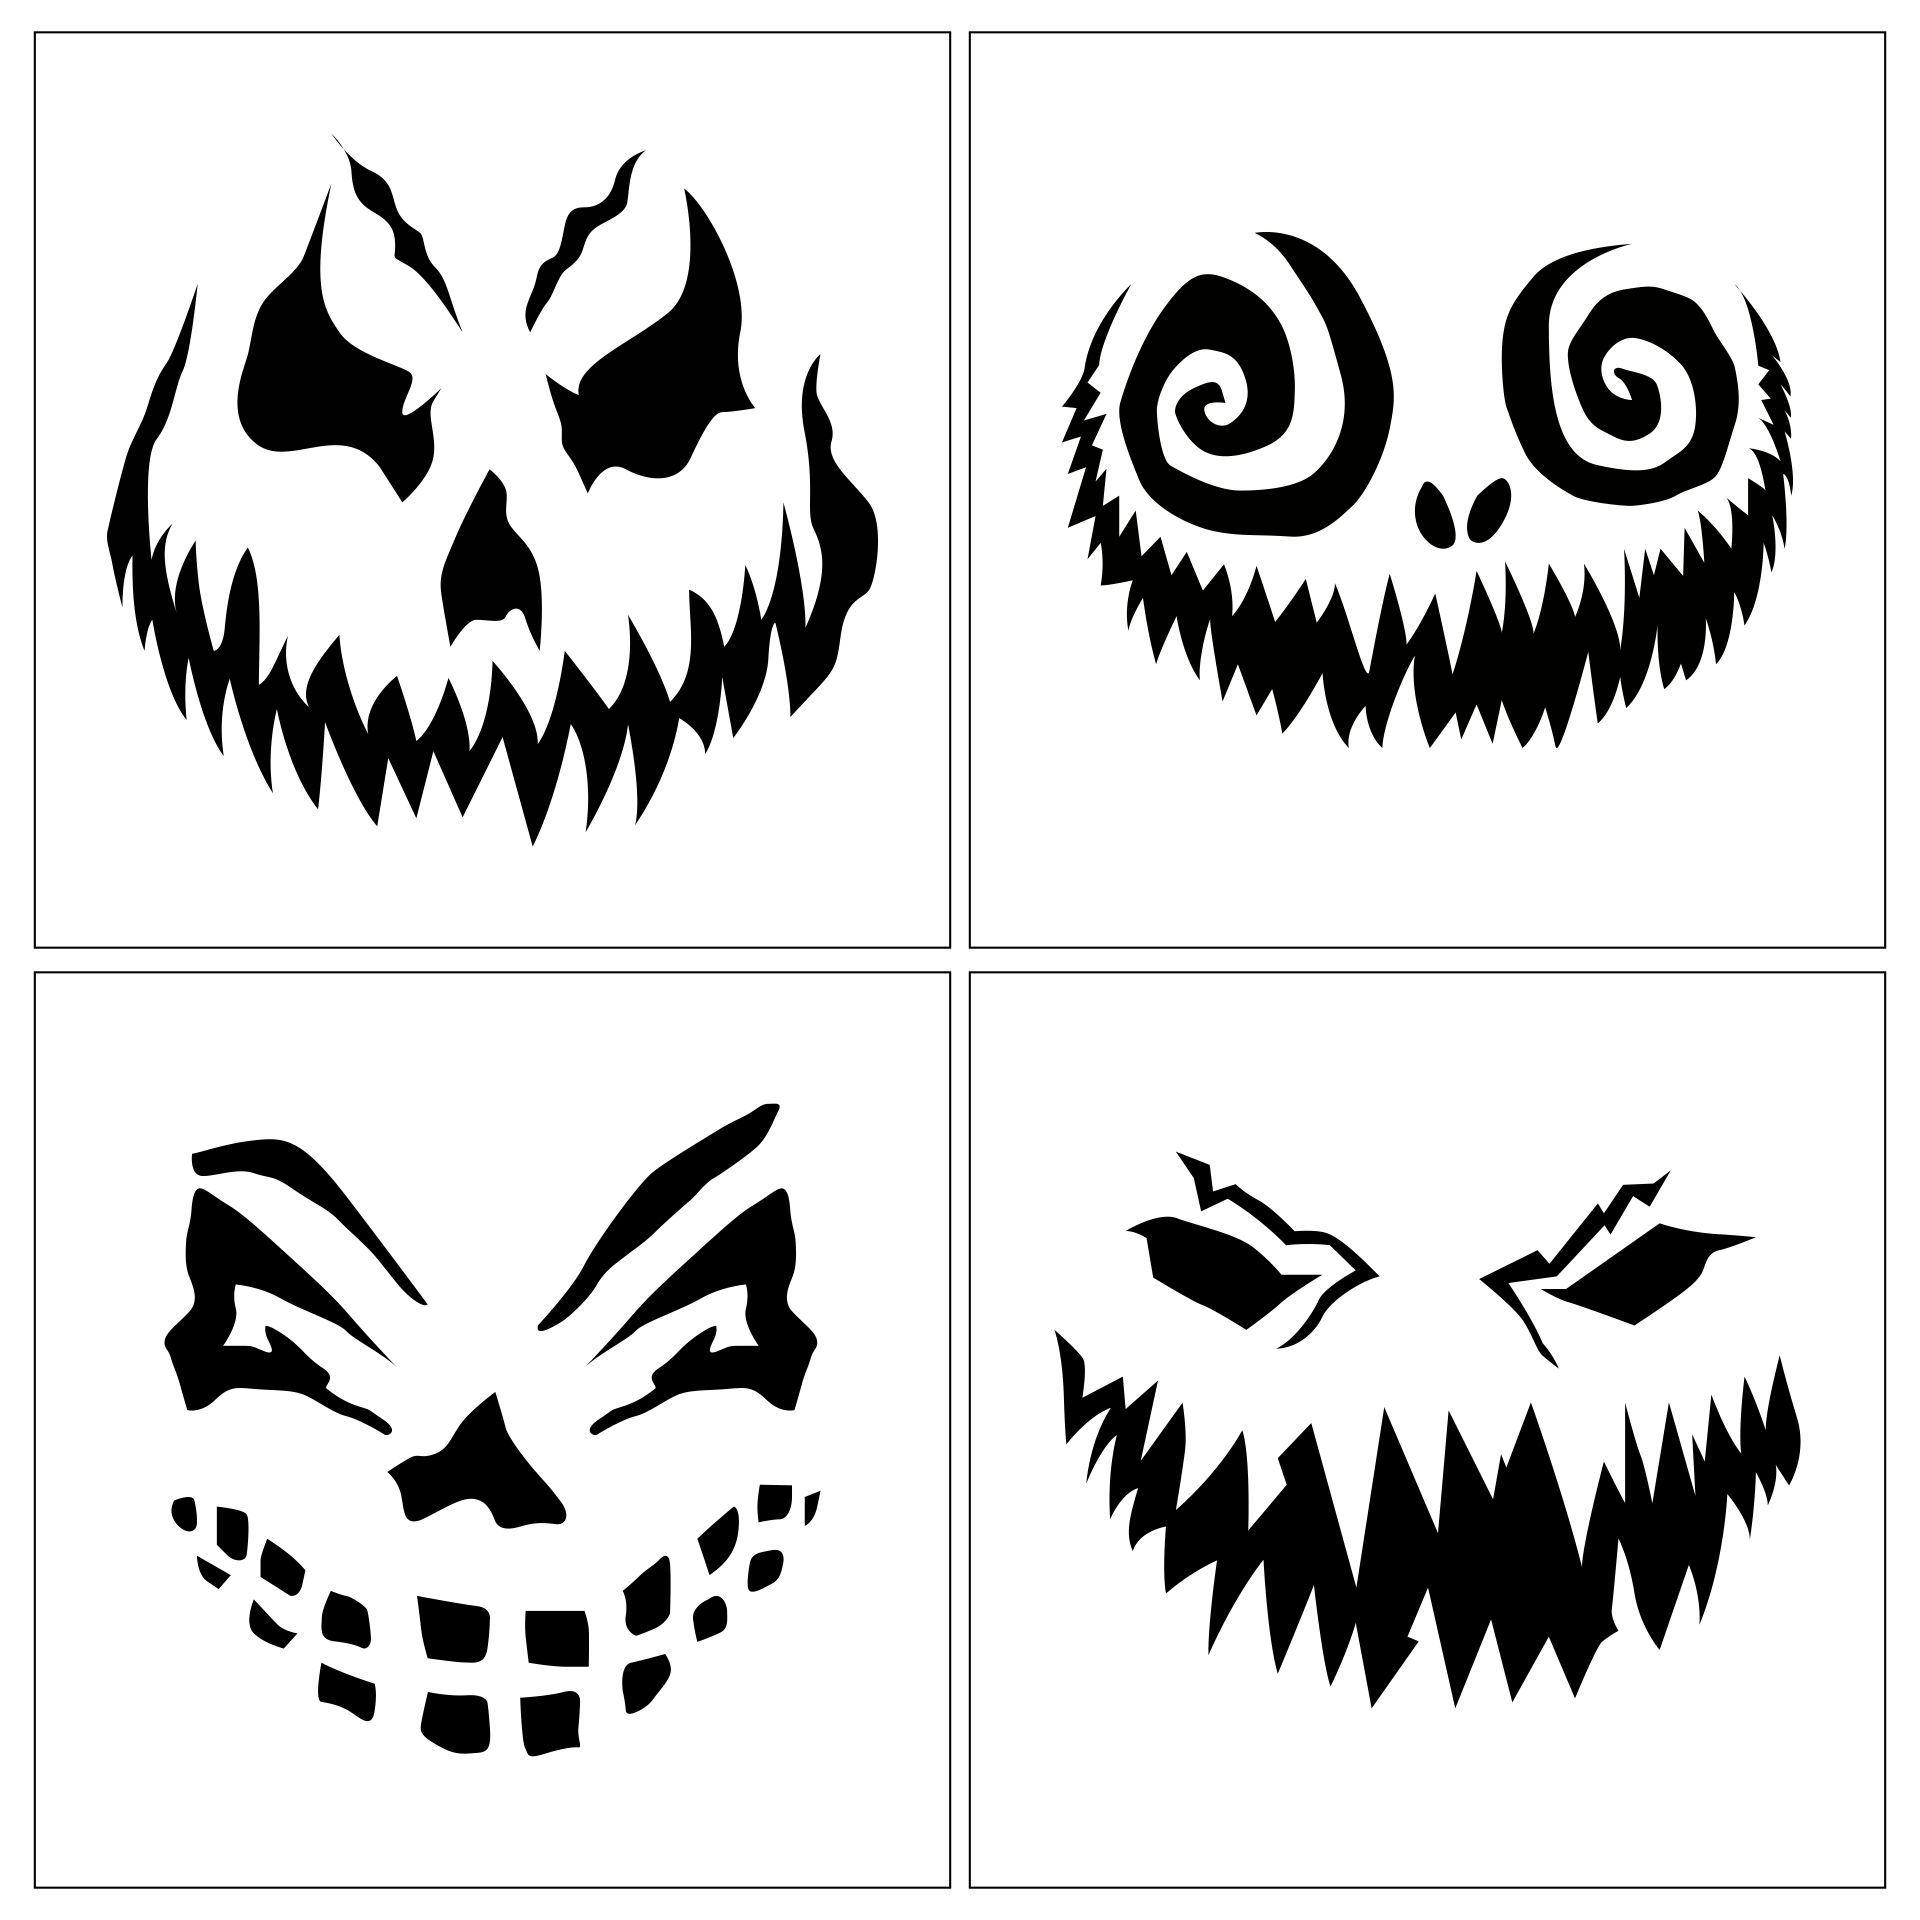 Stencils to Print and Cut Out